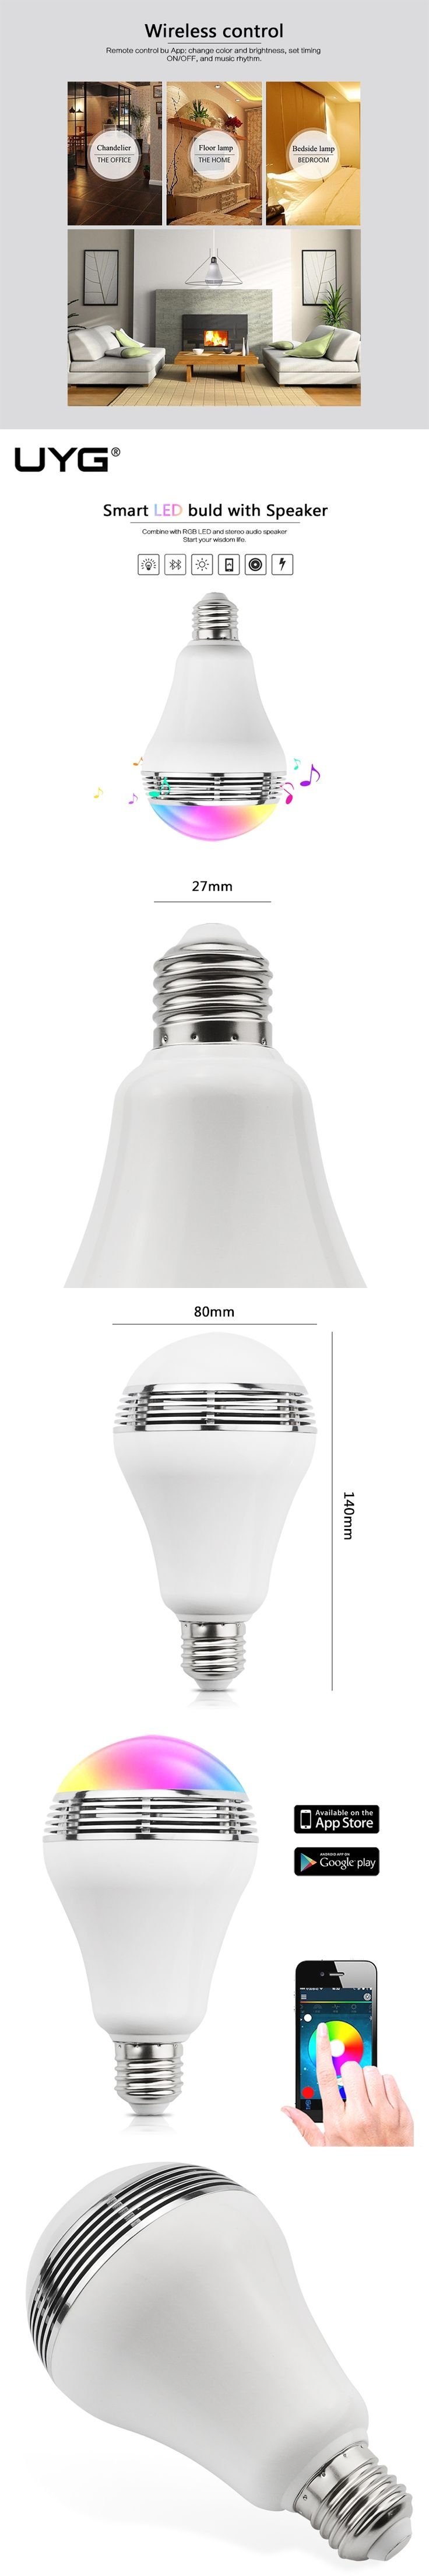 Smart LED light Bulb music Mini Wireless Bluetooth Speaker Colorful Dimmable E27 3W Lamp APP Remote Control for Android iphone